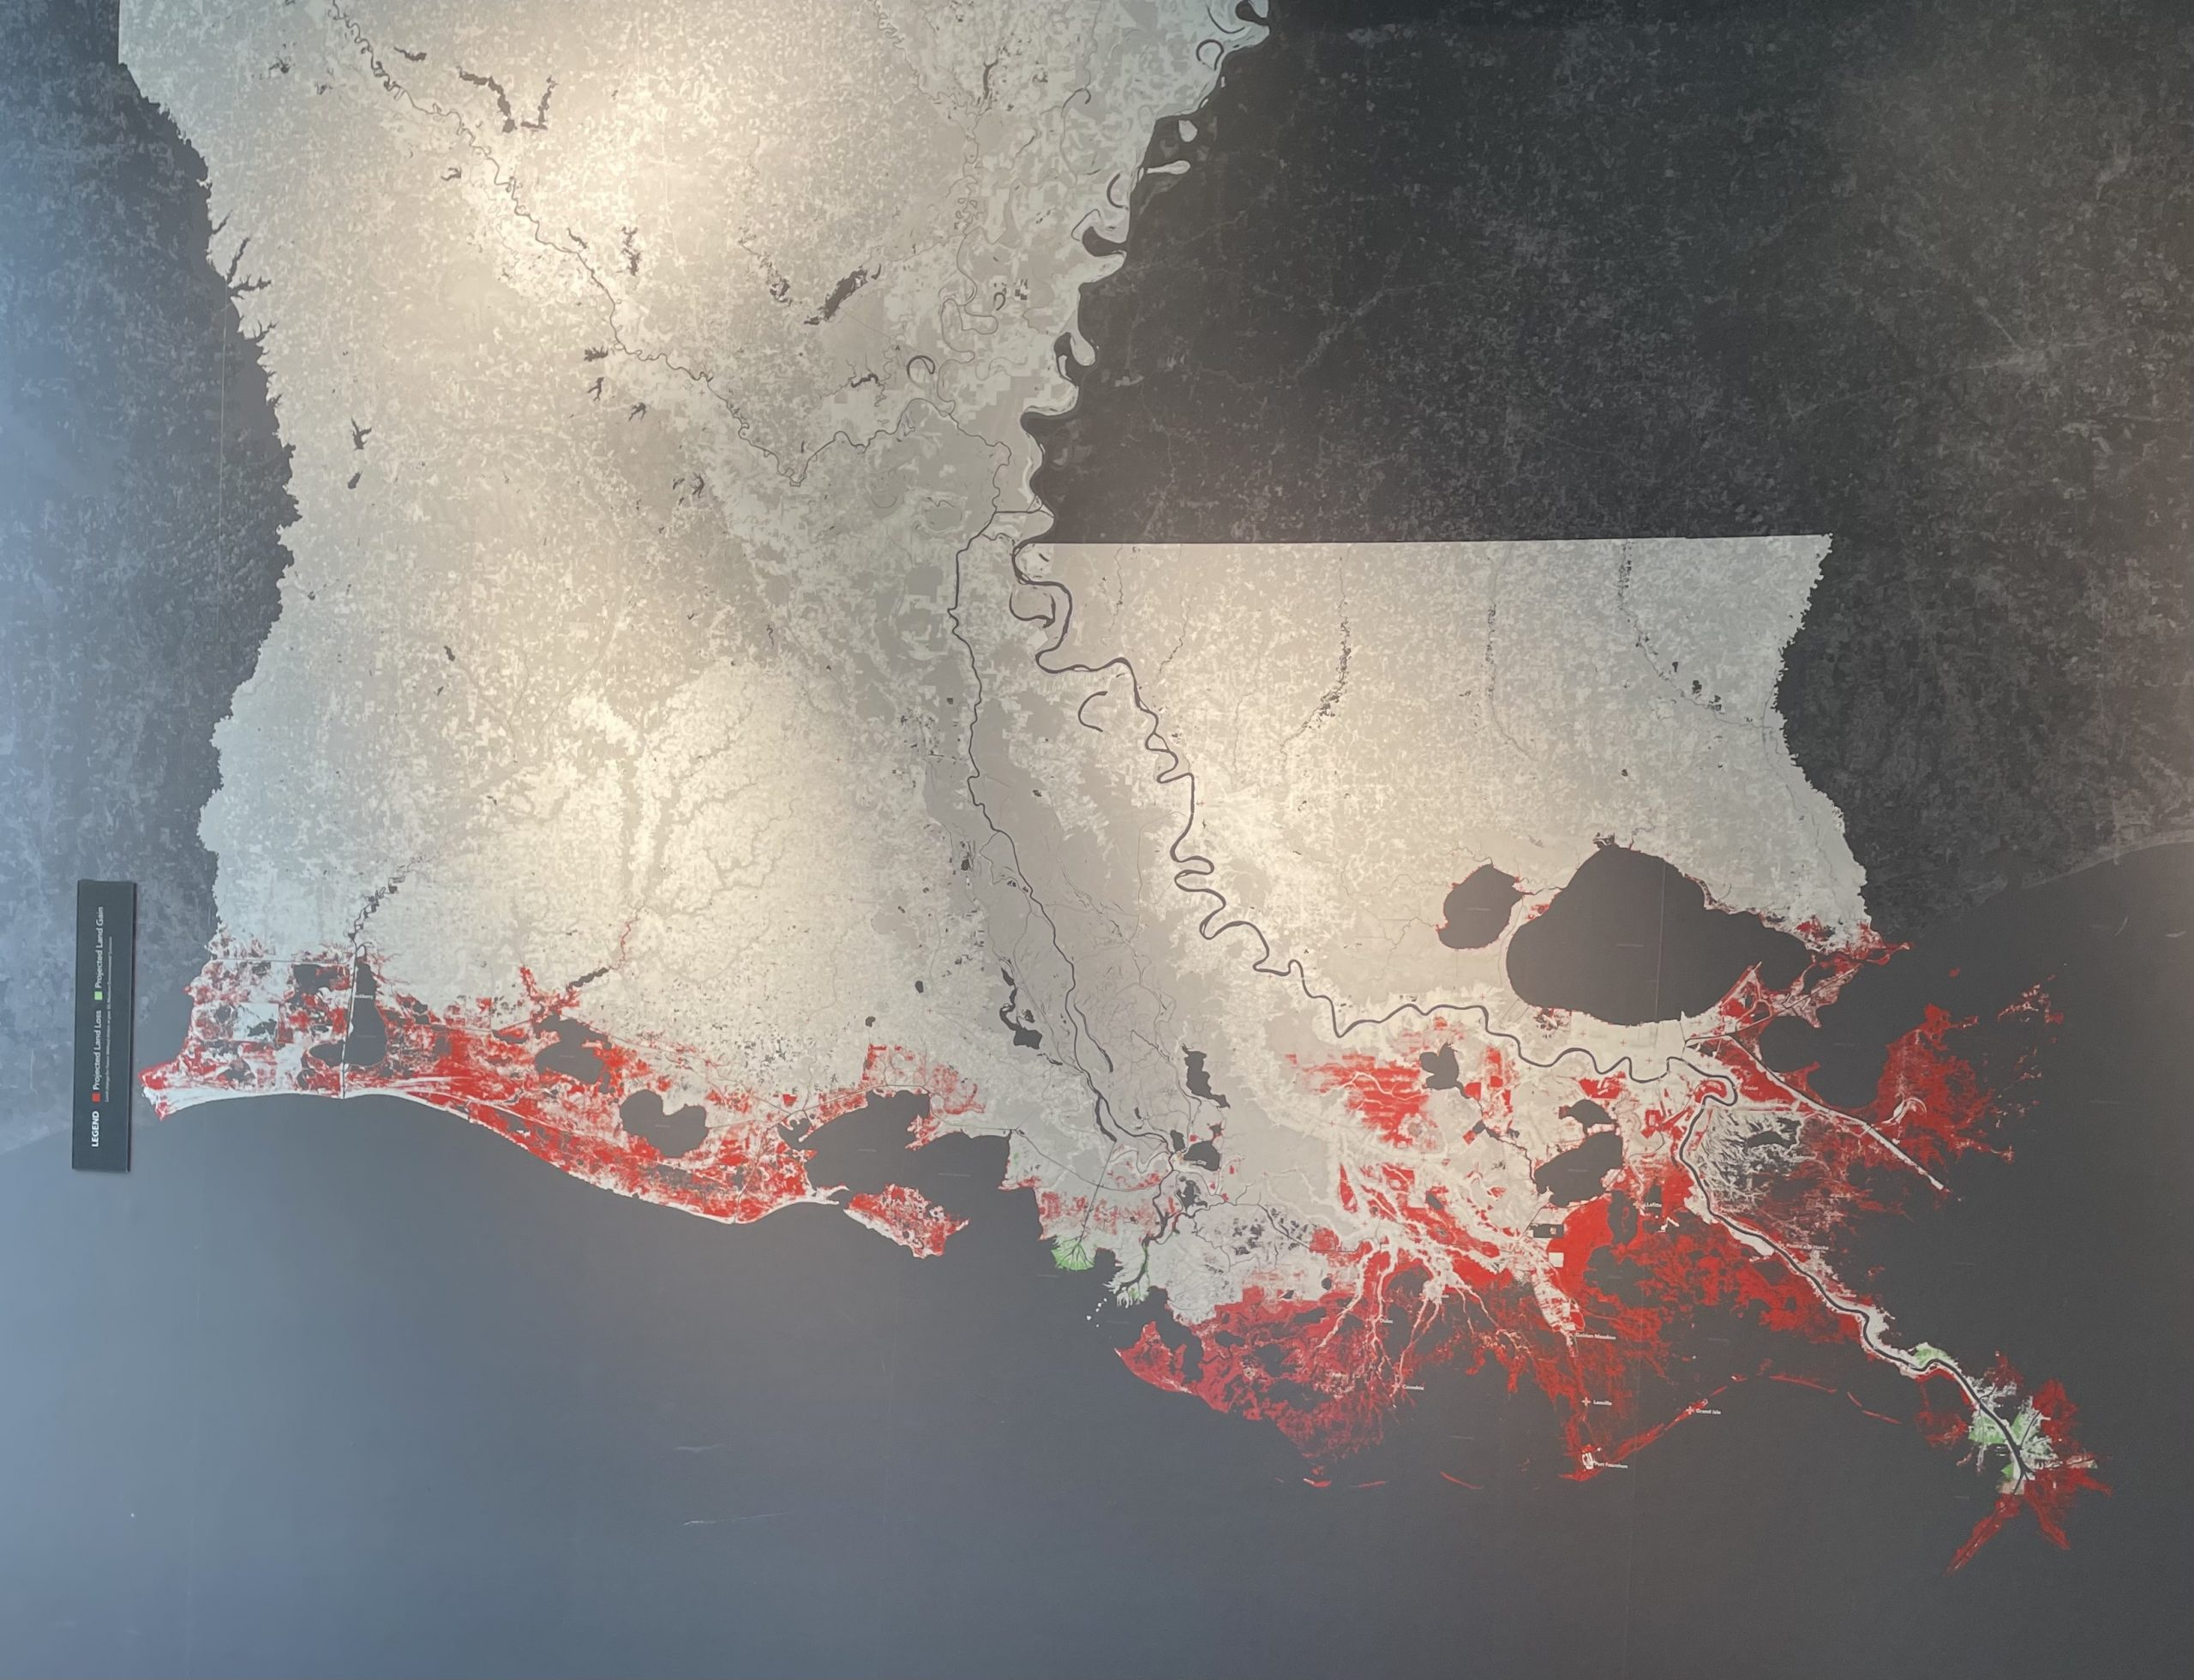 If Louisiana did nothing to try to restore the coast, it would lose the areas in red on this map to erosion over the next 50 years.